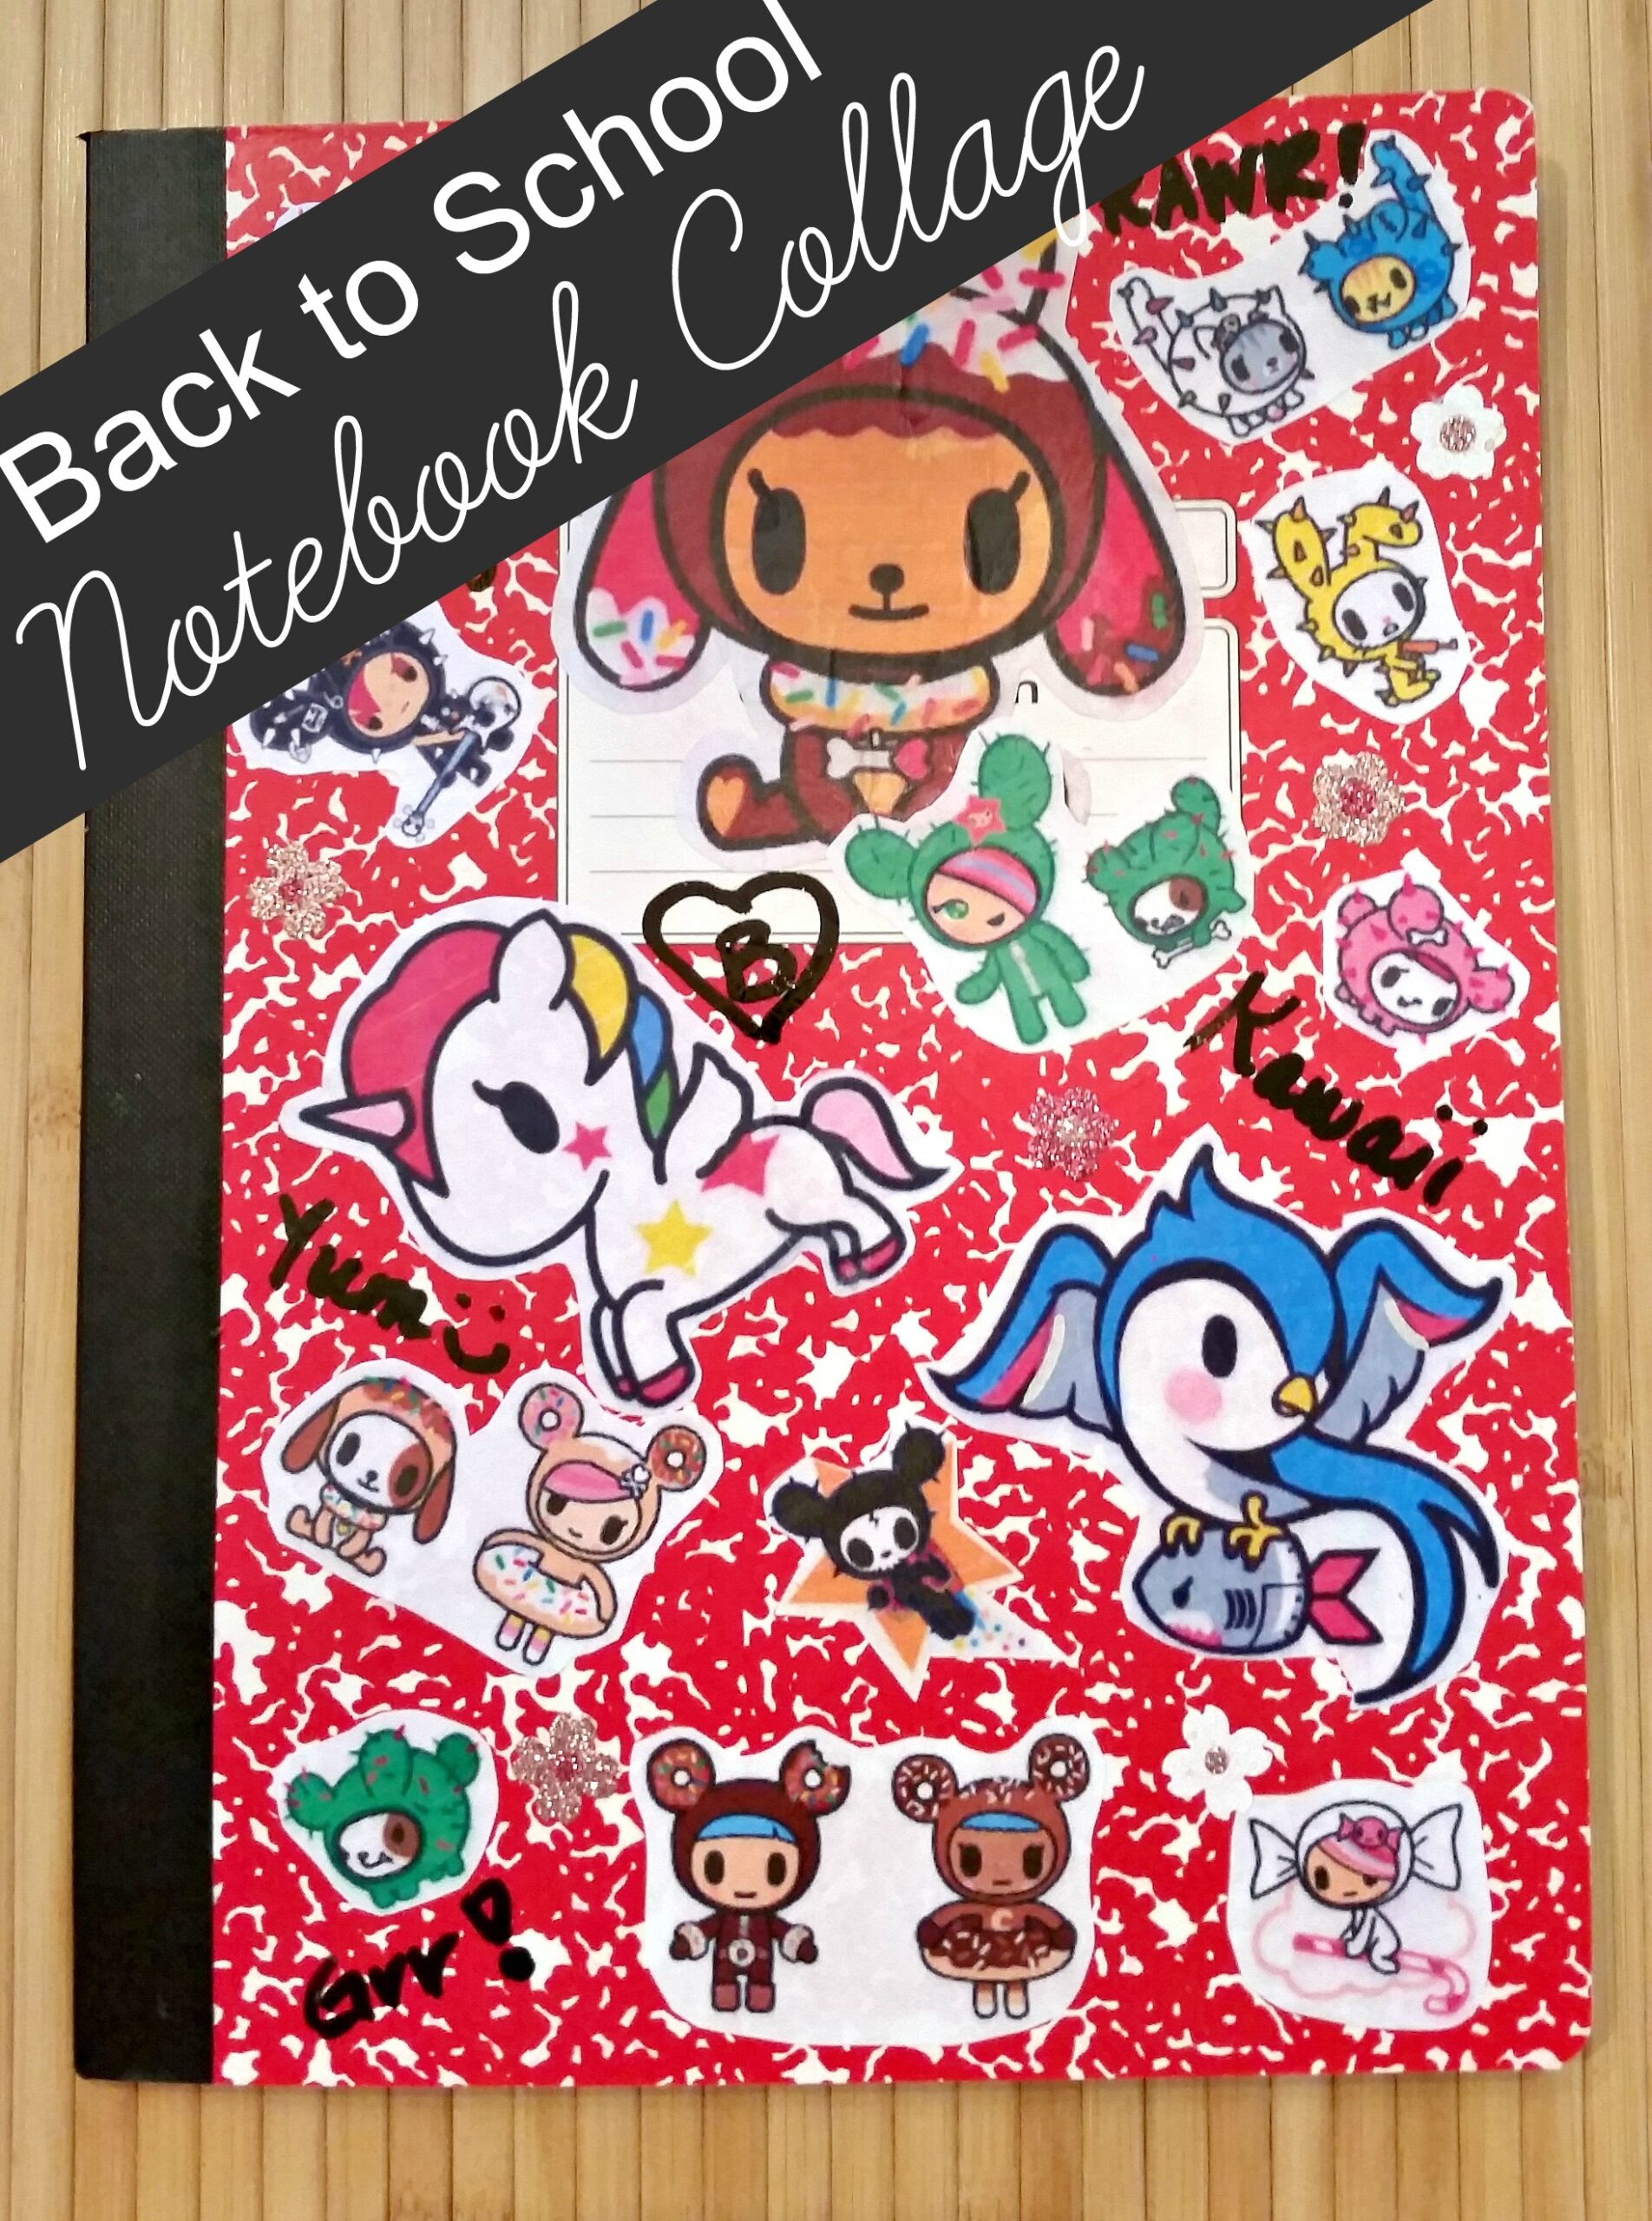 Back To School Notebook Collage